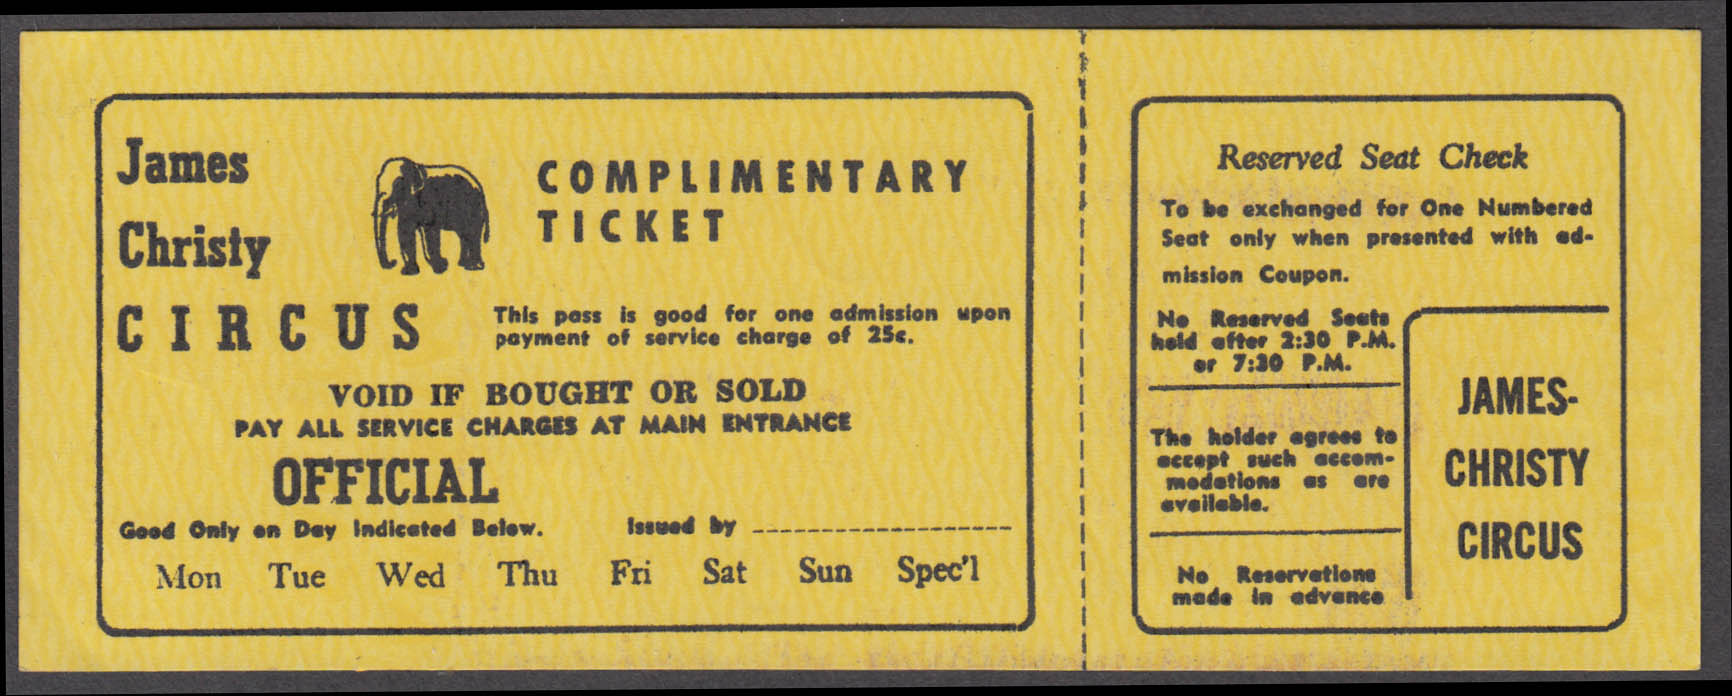 James Christy Complimentary Reserved Seat Check circus ticket